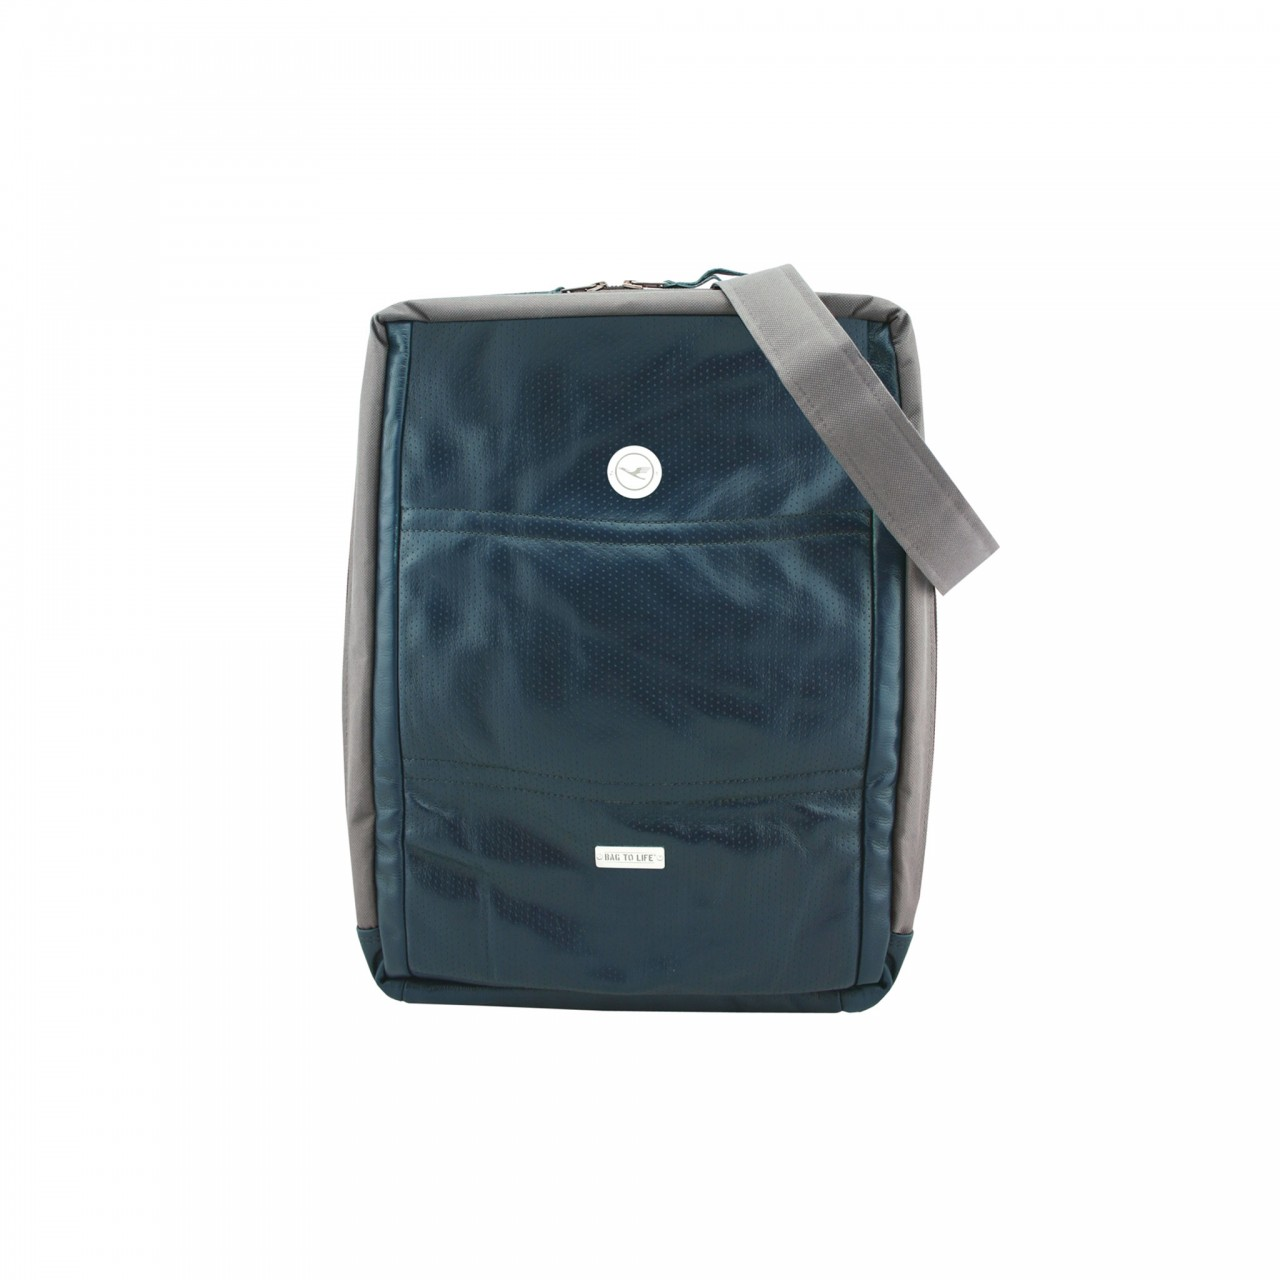 Bag To Life Lufthansa Business Class Messenger Bag